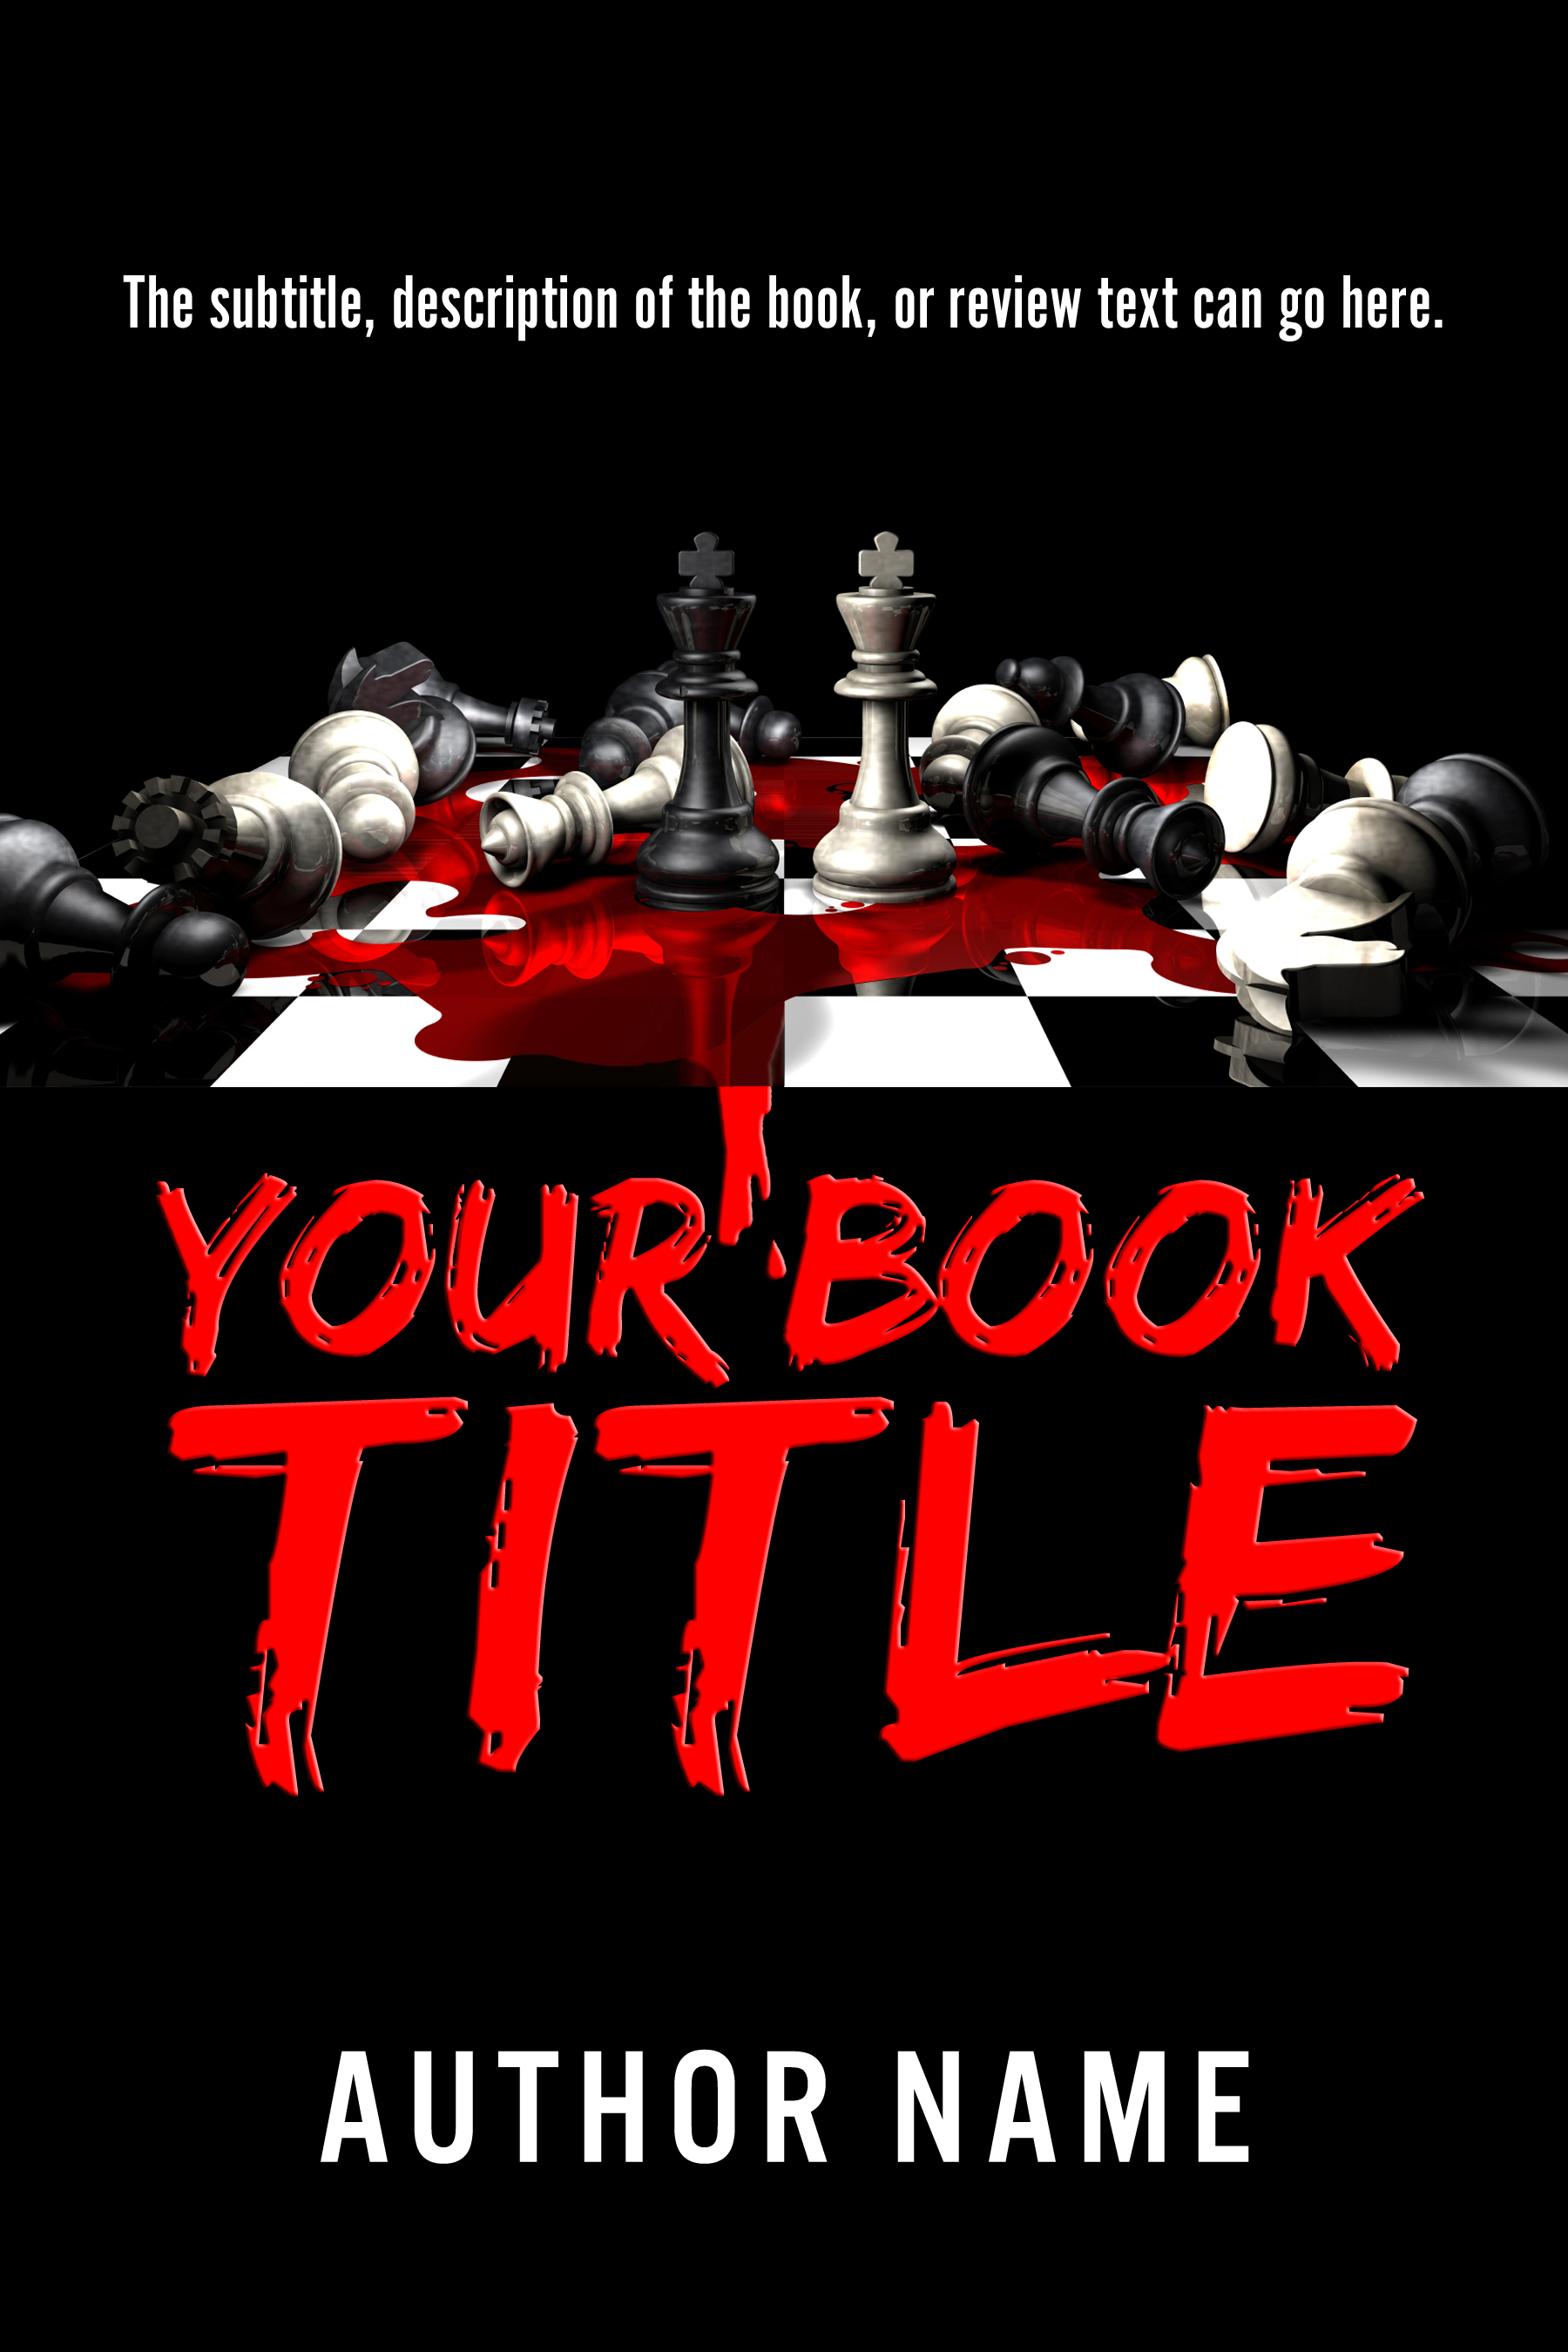 Horror, Murder Mystery Book Cover Design